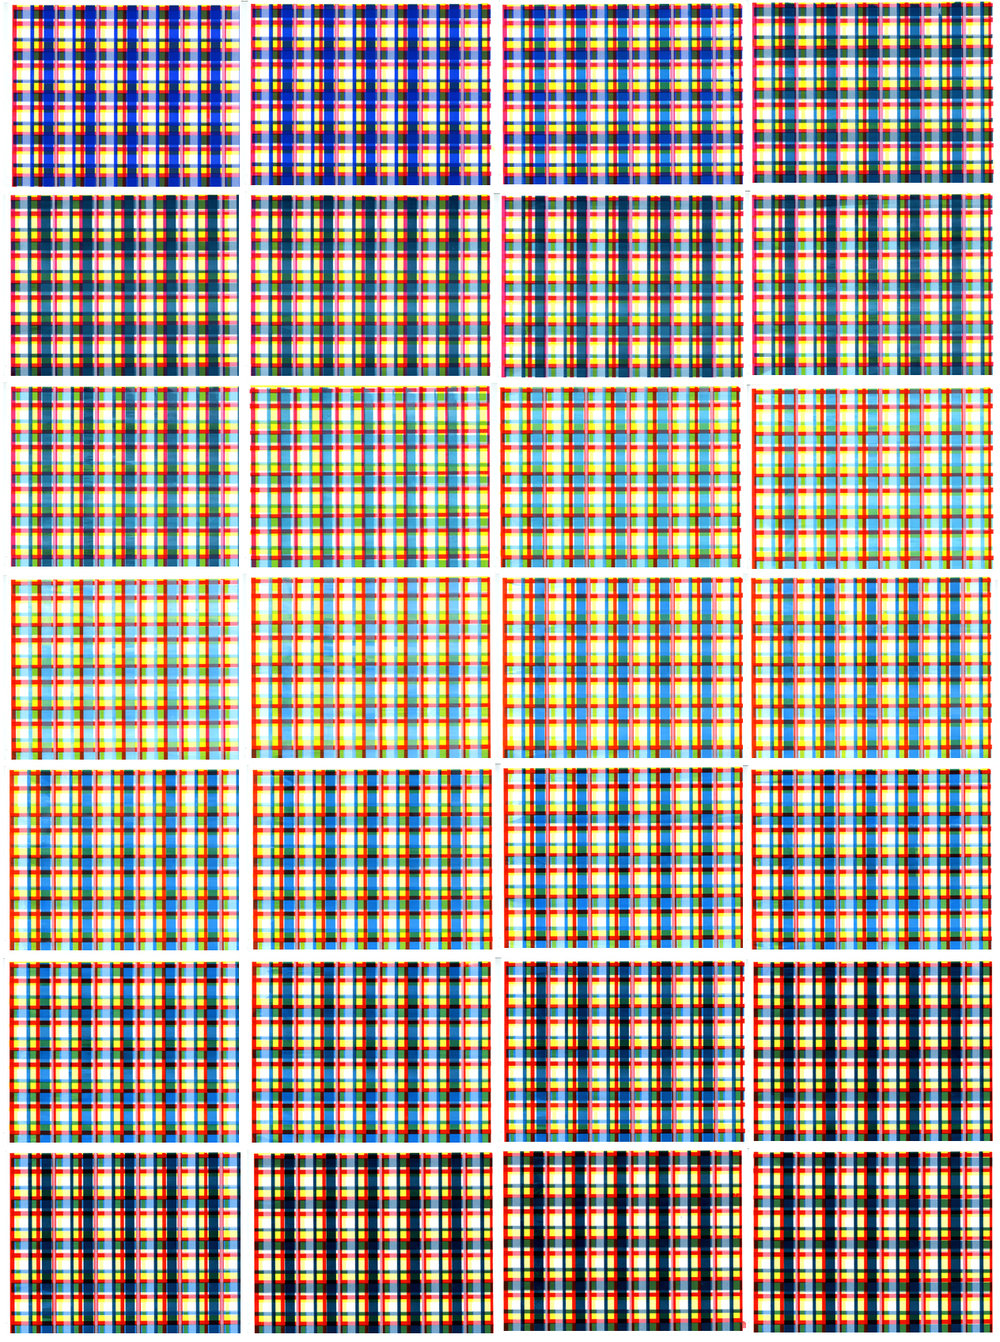 Feeling Plaid (Screen Saver) - 2012